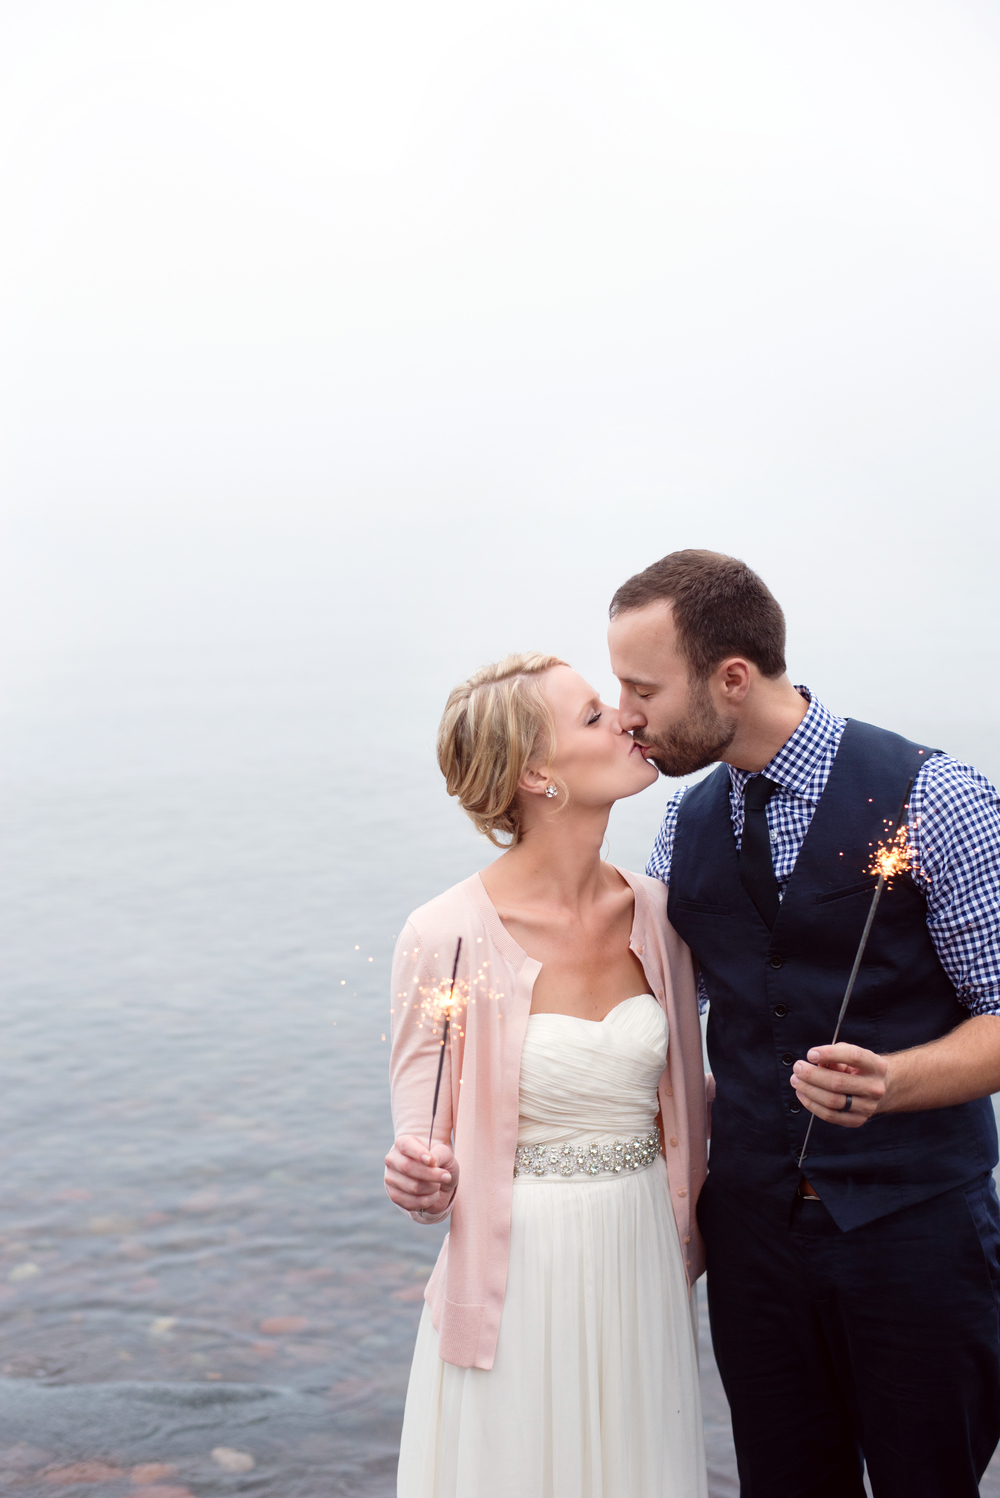 Duluth Wedding Photography by Mad Chicken Studio